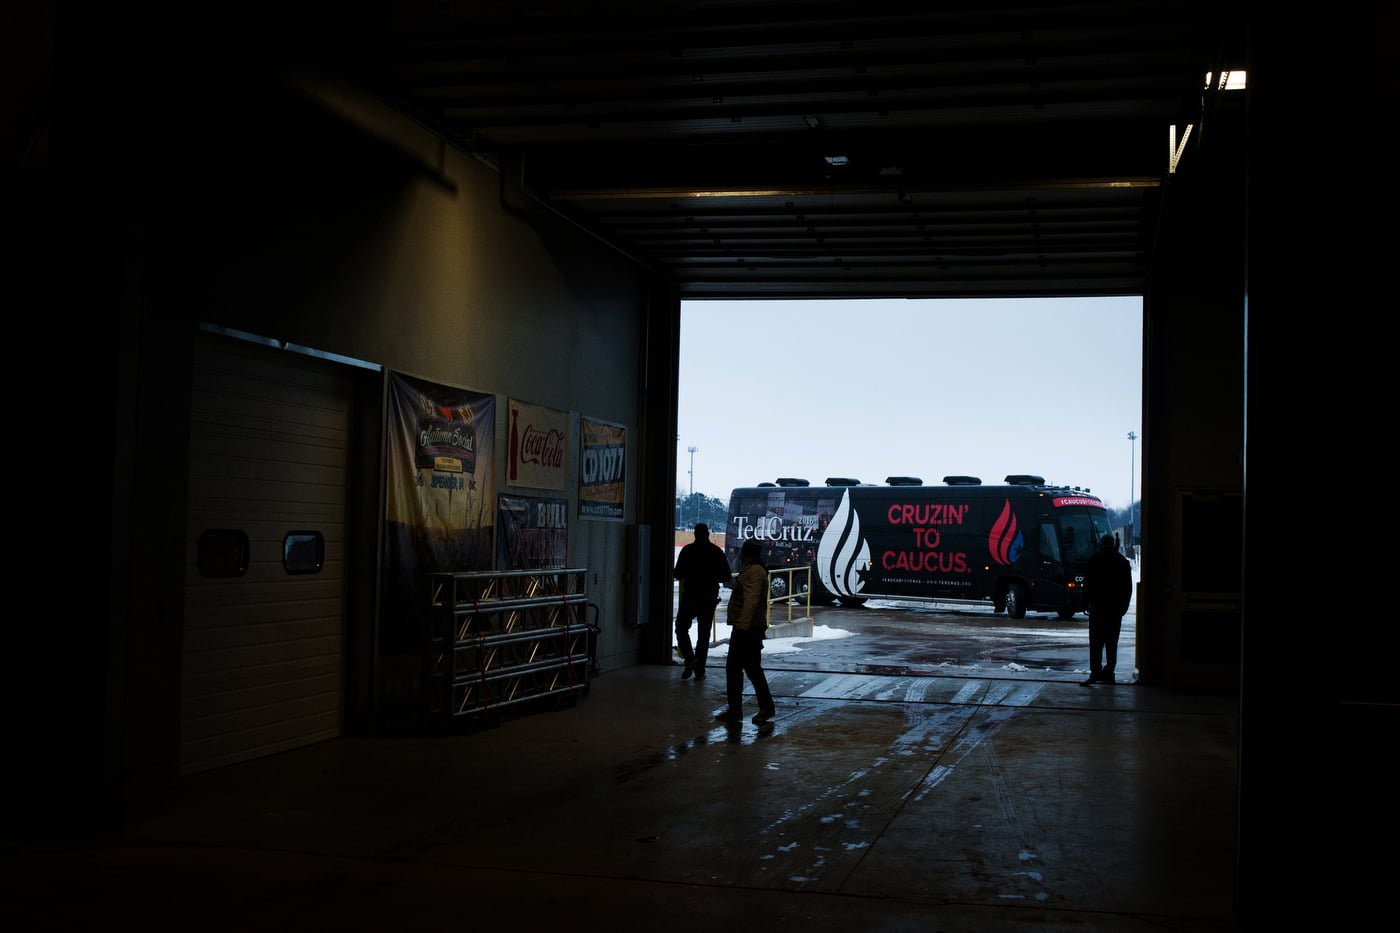 U.S. Republican presidential candidate Ted Cruz' campaign bus pulls into Clay County Regional Event Center in Spencer, Iowa January 6, 2016.